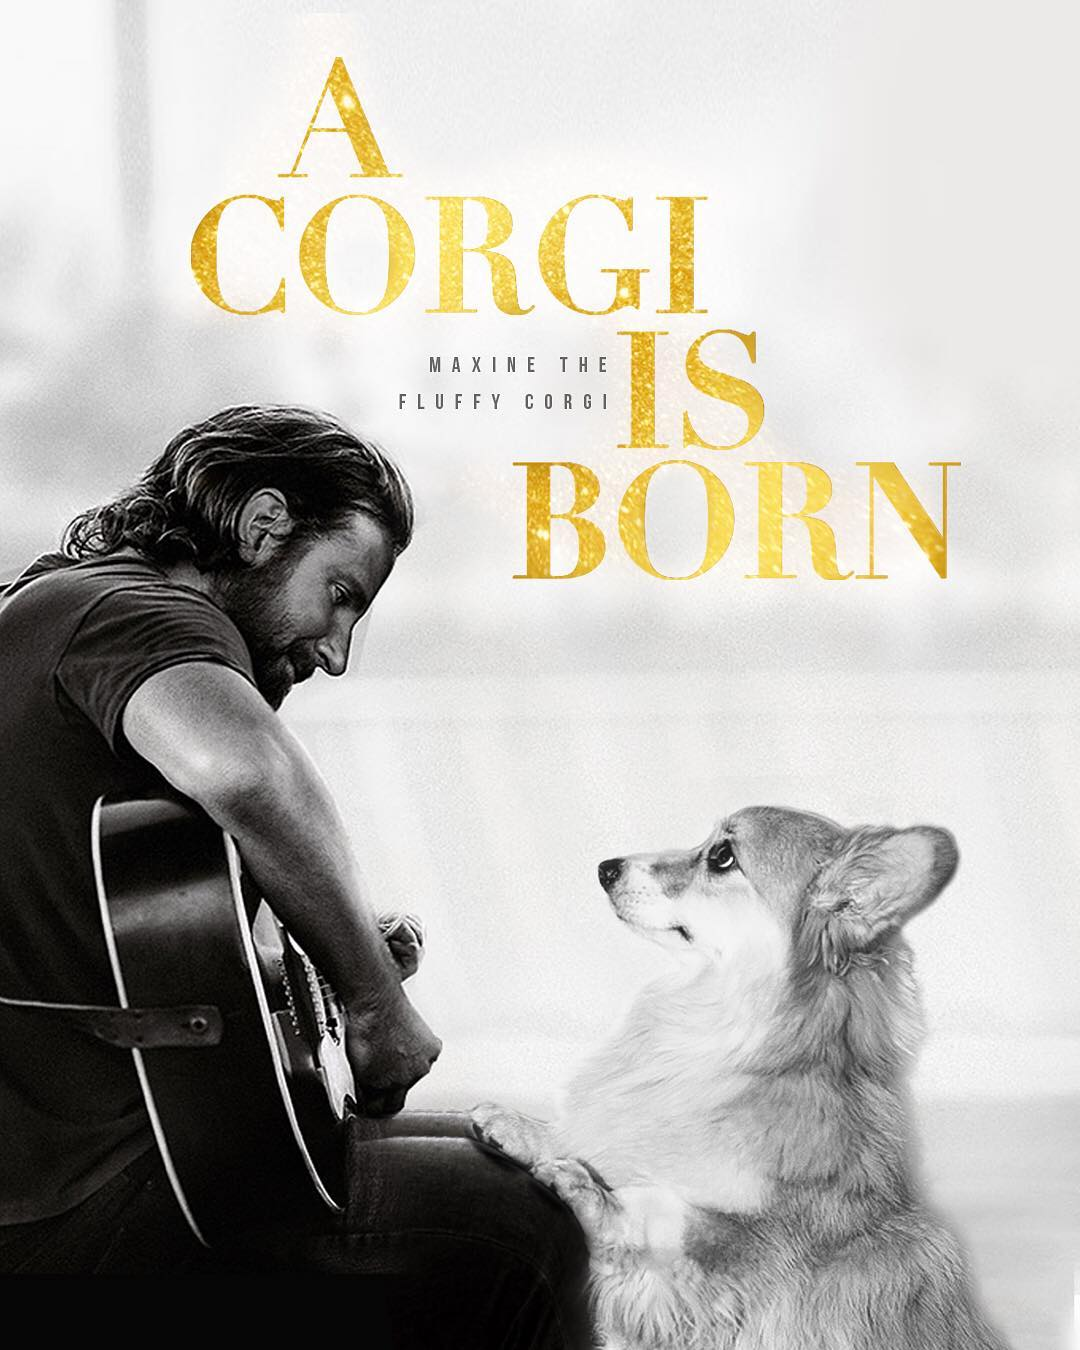 Dog Gets The Star Treatment By Being Photoshopped Into Movie Posters